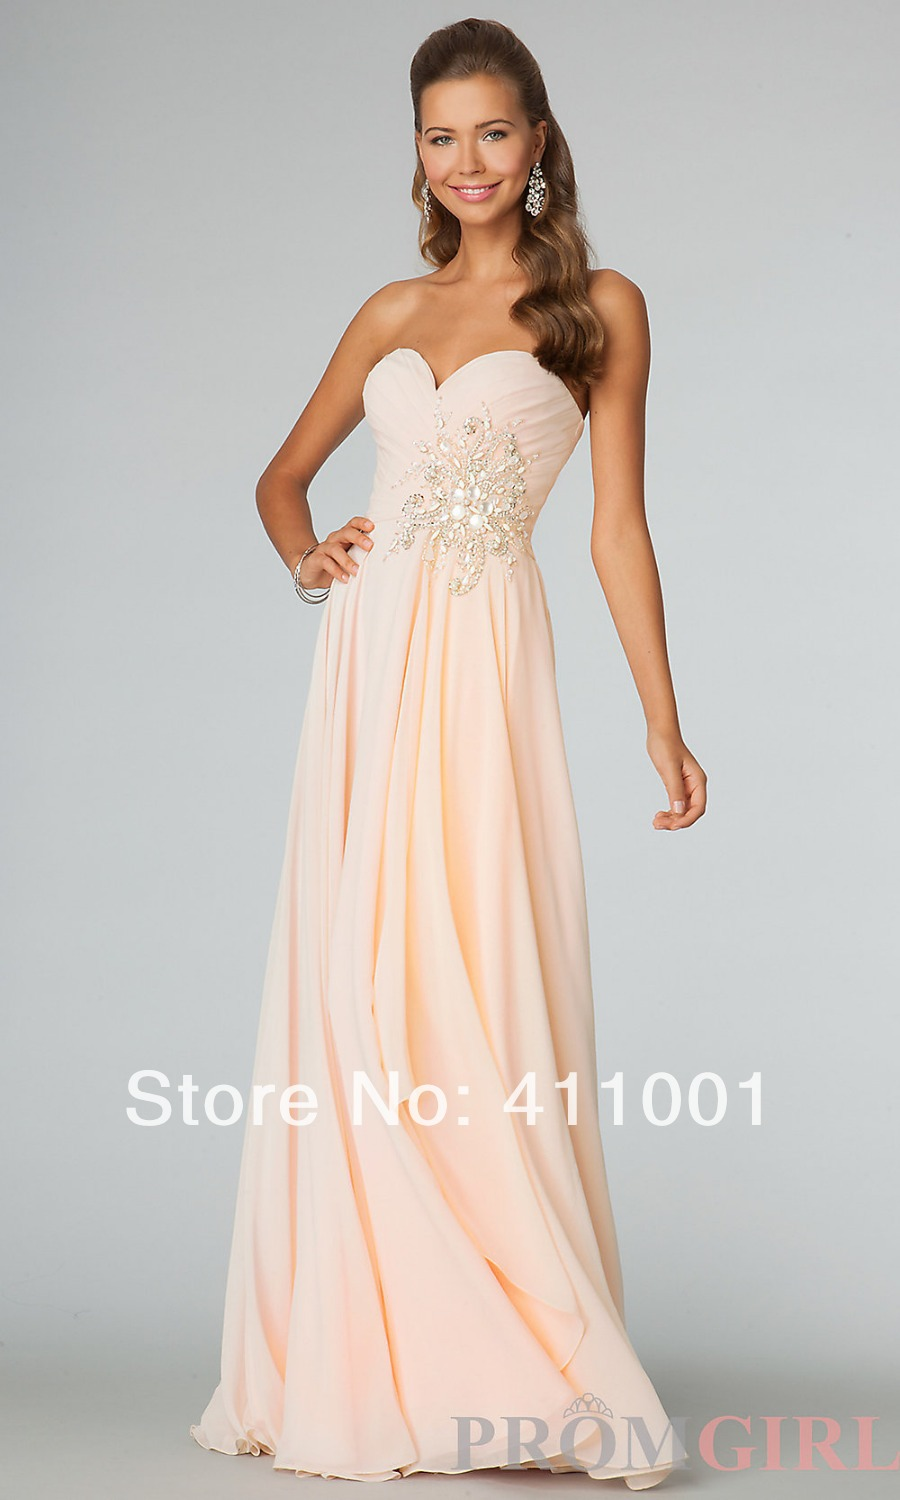 jcpenney wedding dresses Floor Length Prom Dress with Illusion Bodice